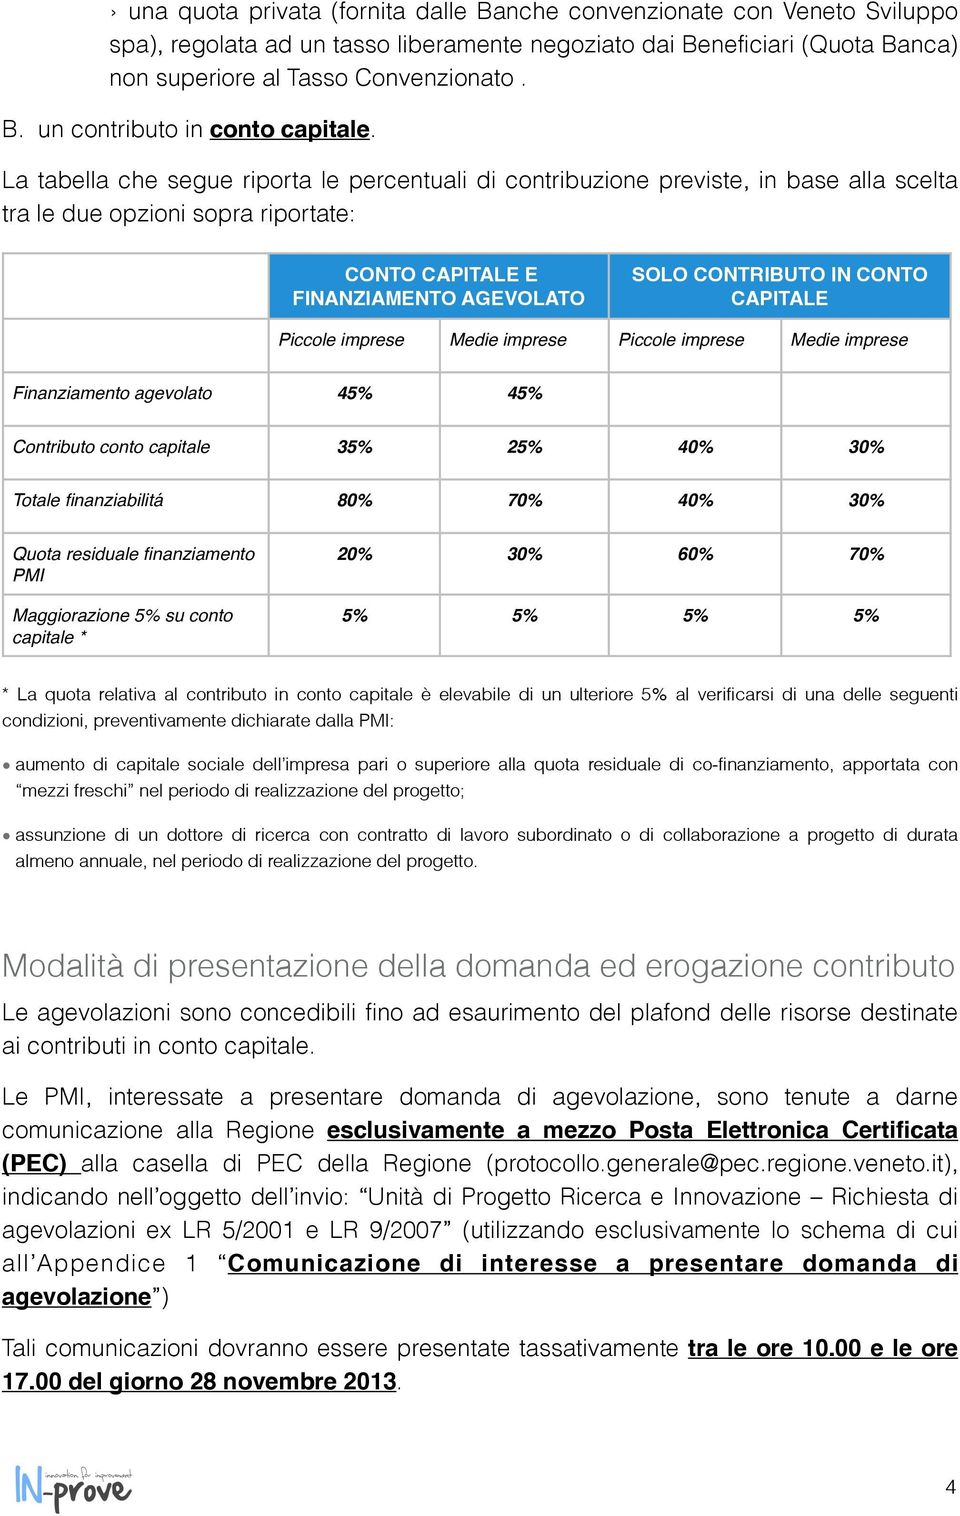 CAPITALE Piccole imprese Medie imprese Piccole imprese Medie imprese Finanziamento agevolato 45% 45% Contributo conto capitale 35% 25% 40% 30% Totale finanziabilitá 80% 70% 40% 30% Quota residuale